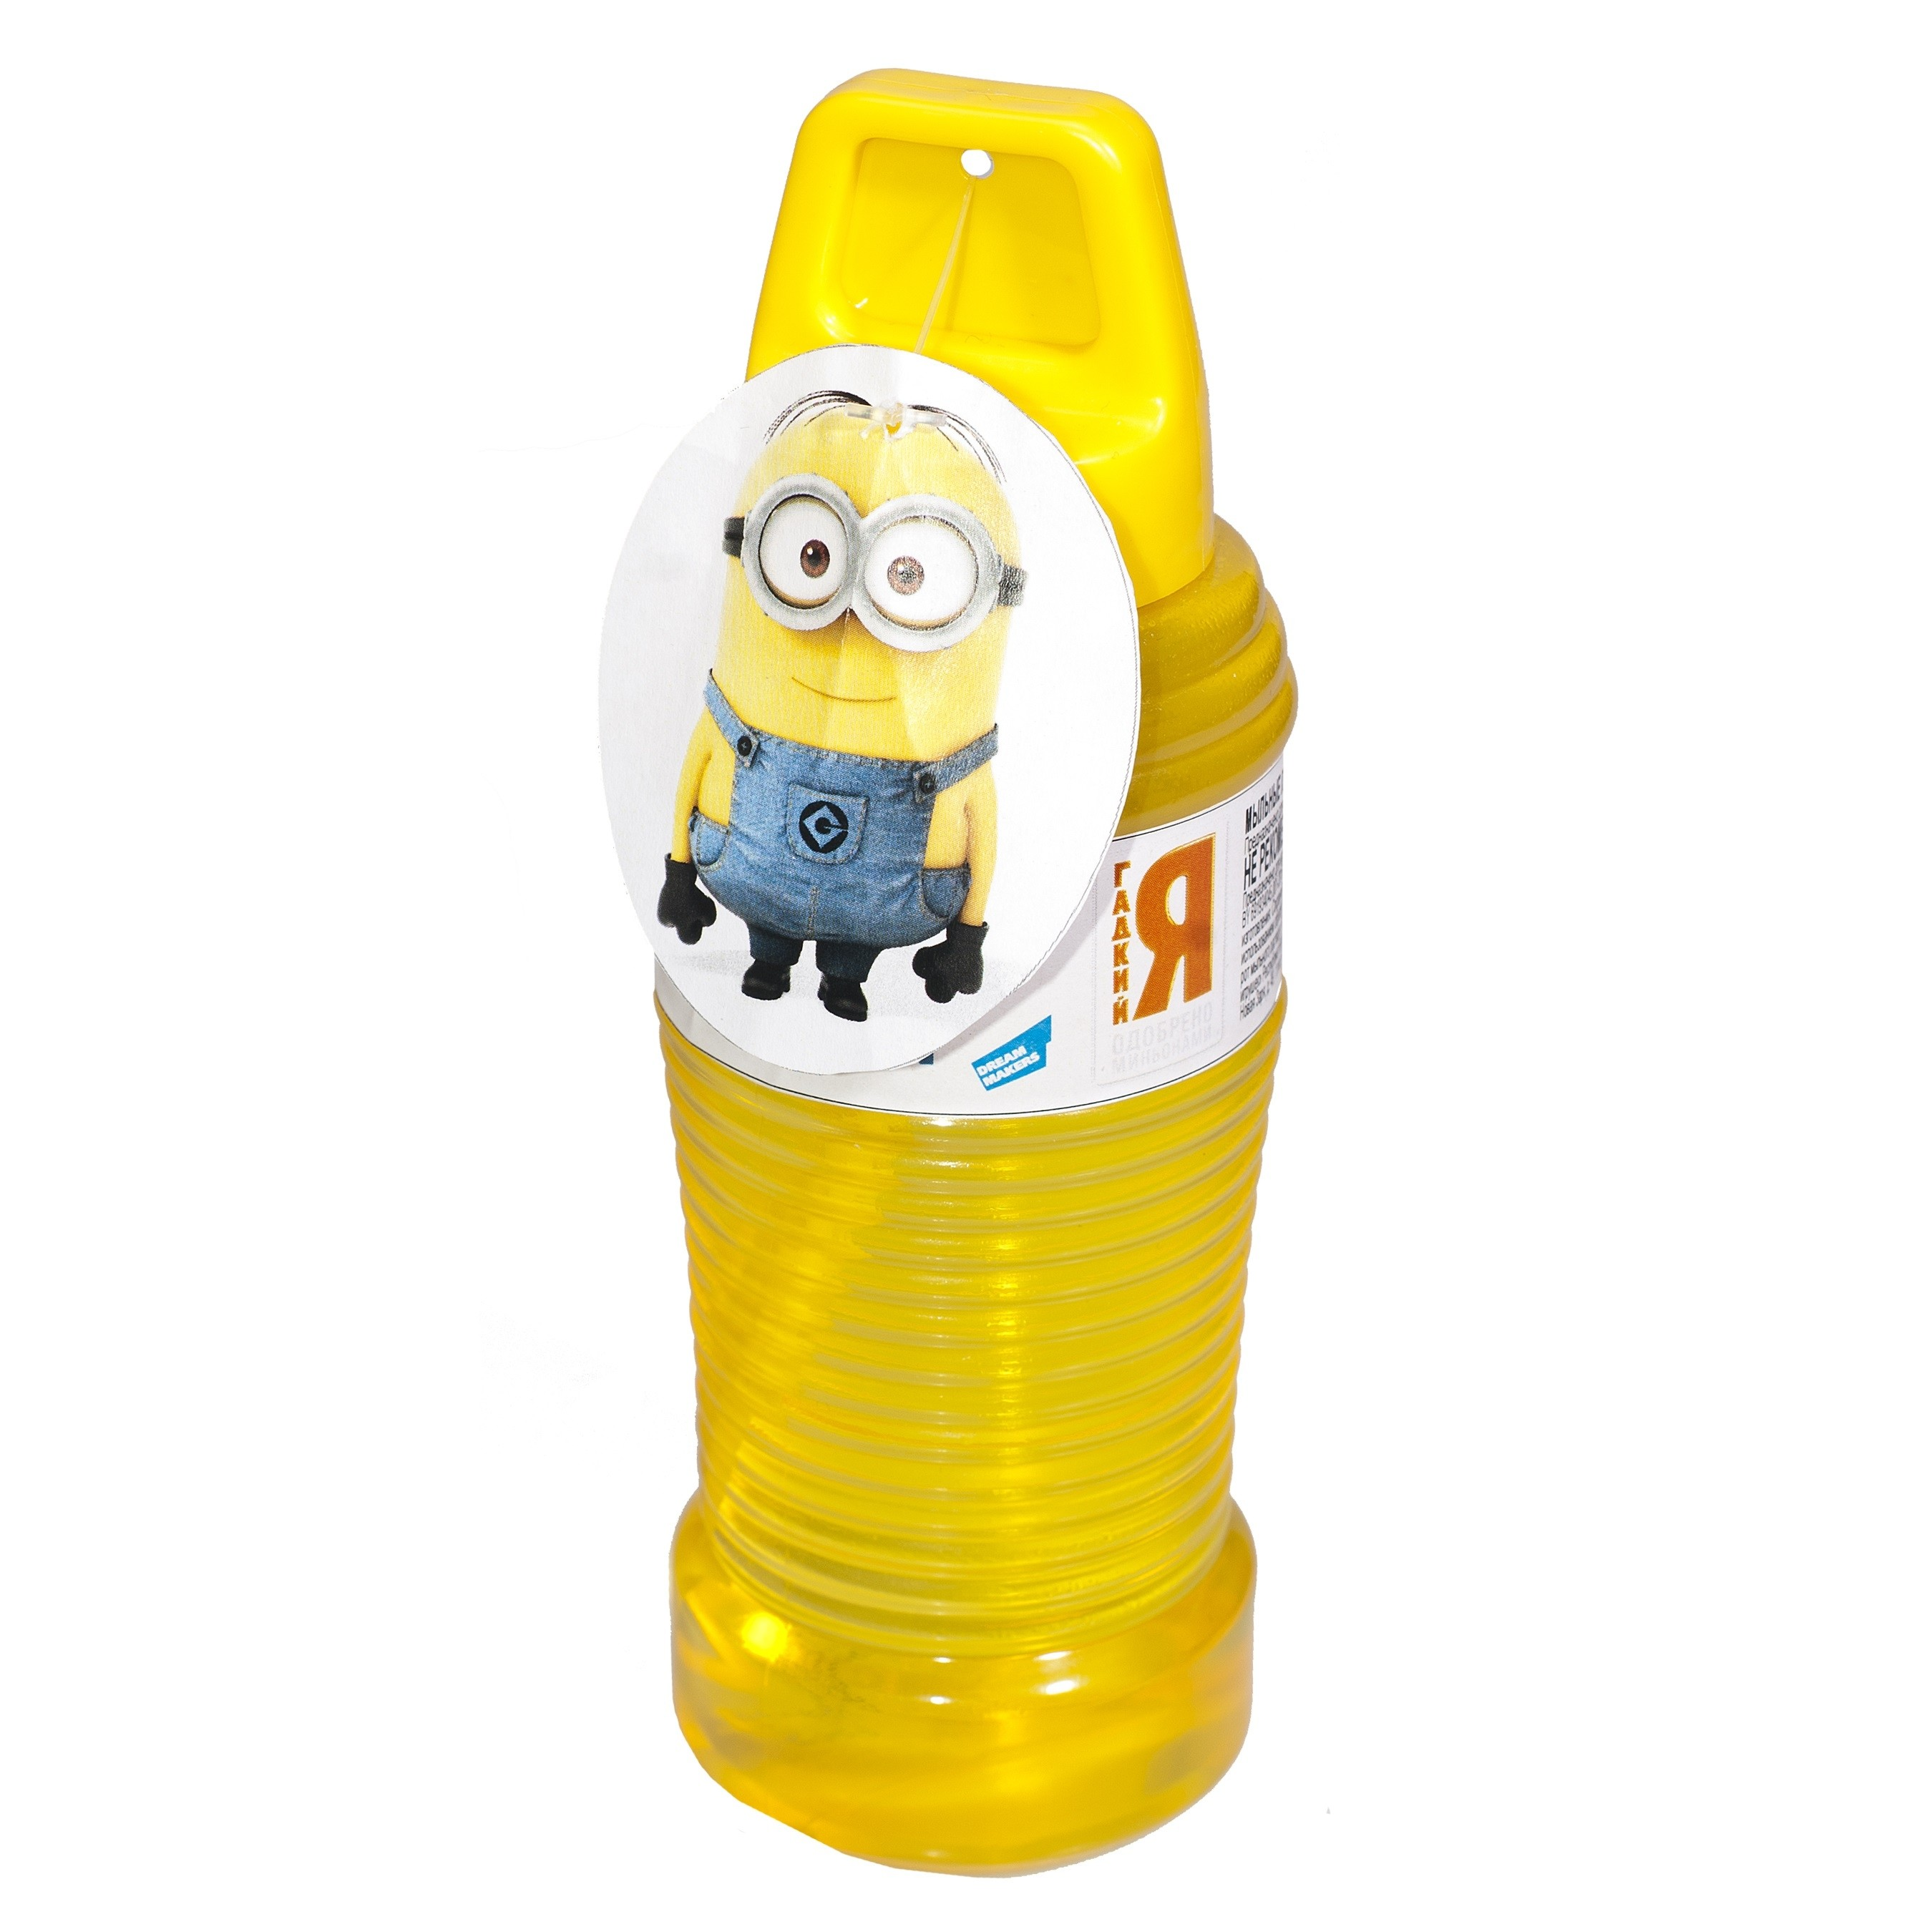 Мыльные пузыри Despicable Me Мыльные пузыри Despicable Me 240 мл for 2003 2011 volvo xc90 18pcs car interior led light kit white lamp dc 12v reading light